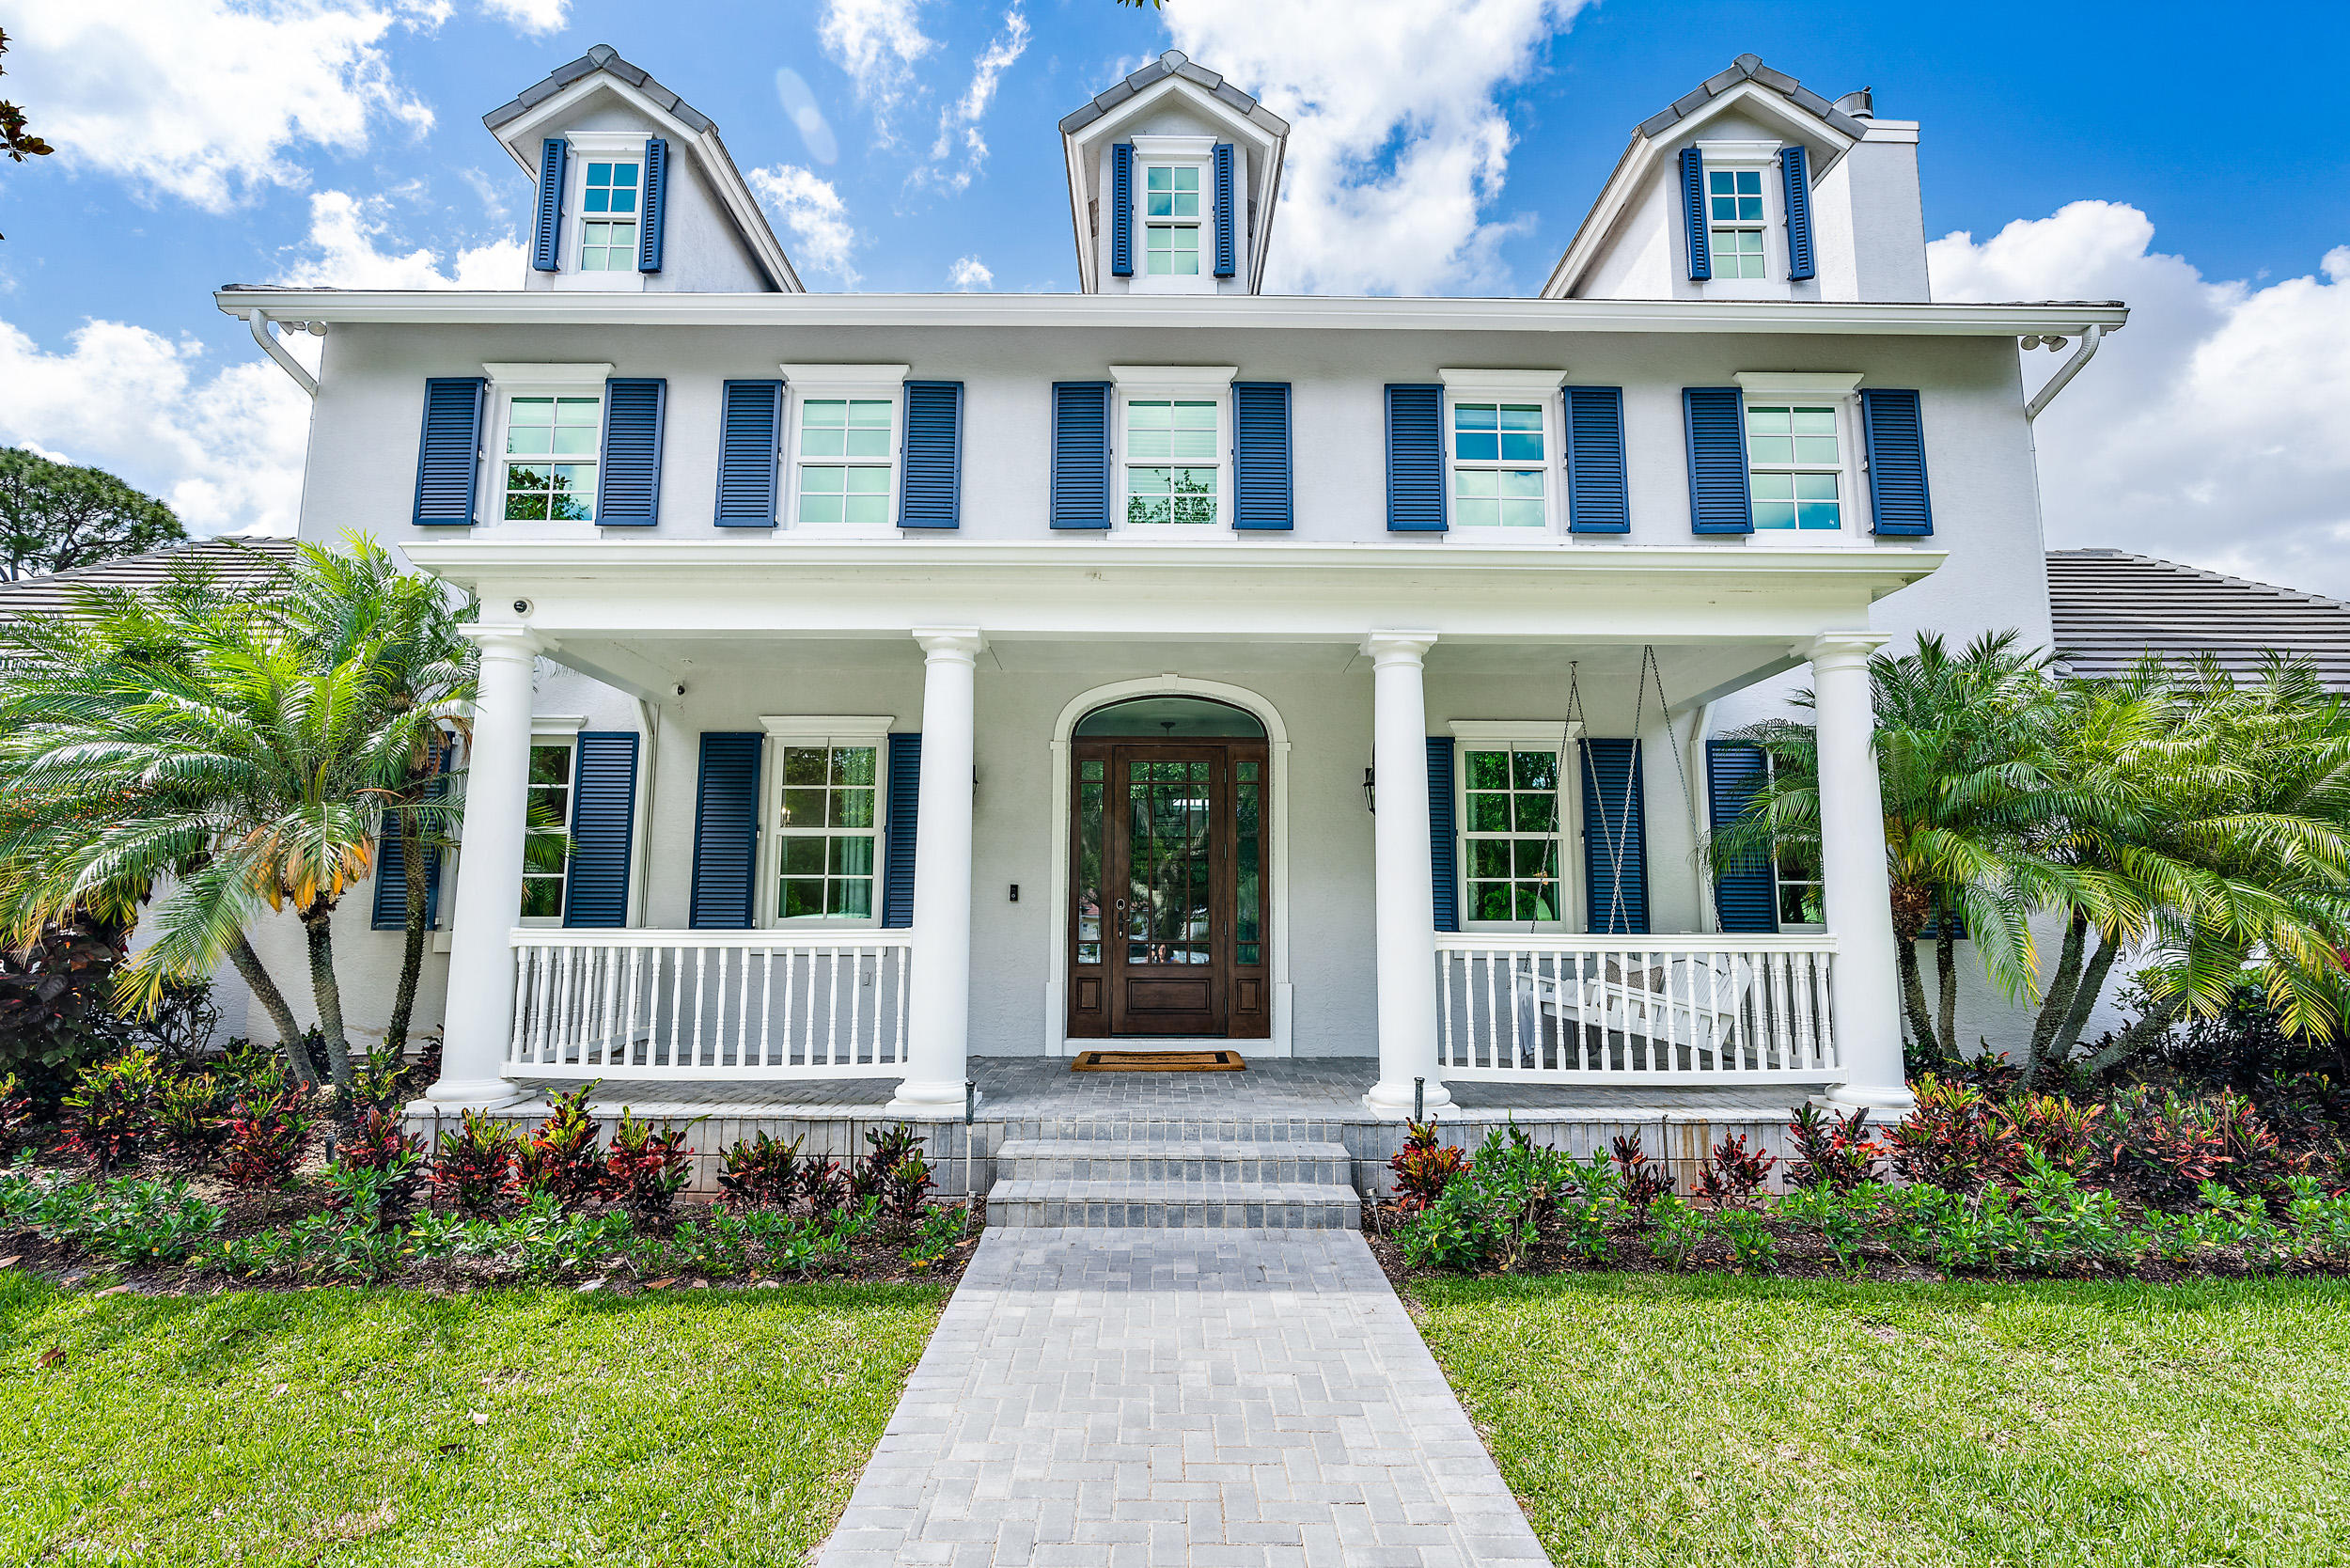 Don't miss this beautiful home in the prestigious community of Steeplechase! This flawless 5 BR home + office has been superbly renovated with a newer (2018) roof, new tennis court (2021), Lynx built-in natural gas grill (2020), whole house generator (2020), top of the line kitchen w/ sub-zero + thermador appliances, quartzite counters with lights & much more. This stunning home boosts impact windows, 4 A/C units, SWAT mosquito system, GFI charging outlets + a tankless water heater. Perfectly situated on a beautiful lot w over 1.6 AC of beauty.  Pull up to this gorgeous home by driving down a long and winding driveway just to be greeted by an inviting front porch with swing. Be amazed by the hand-scraped wood floors, wood burning fireplace and light & bright feel of this spacious home. The master bedroom suite is located on the first floor with a large master bathroom & walk in closet.  You will find all guest rooms upstairs & an additional bonus room on the second floor on the other side of this well-planned home.   Don't miss the large garage with GFI outlets for charging electric cars tucked away in the back of the home.   Come outside to beautiful landscaping with custom lighting to enhance your outdoor experience. Enjoy the tranquil pool, jacuzzi, outdoor kitchen, fruit trees including Avocado, Banana, Fig, Papaya and more!  Impeccably kept home with whole house generator, SWAT mosquito system and a brand new tennis court!  Steeplechase is a highly sought after, family friendly community, close to I-95, the Turnpike, and Palm Beach Airport. Perfectly situated within a man-gated community, with luxury estate homes and tree lined streets. Steeplechase is a unique Residential home community, located in the heart of Palm Beach Gardens, minutes fine shopping, educational resources, beaches and golf courses.